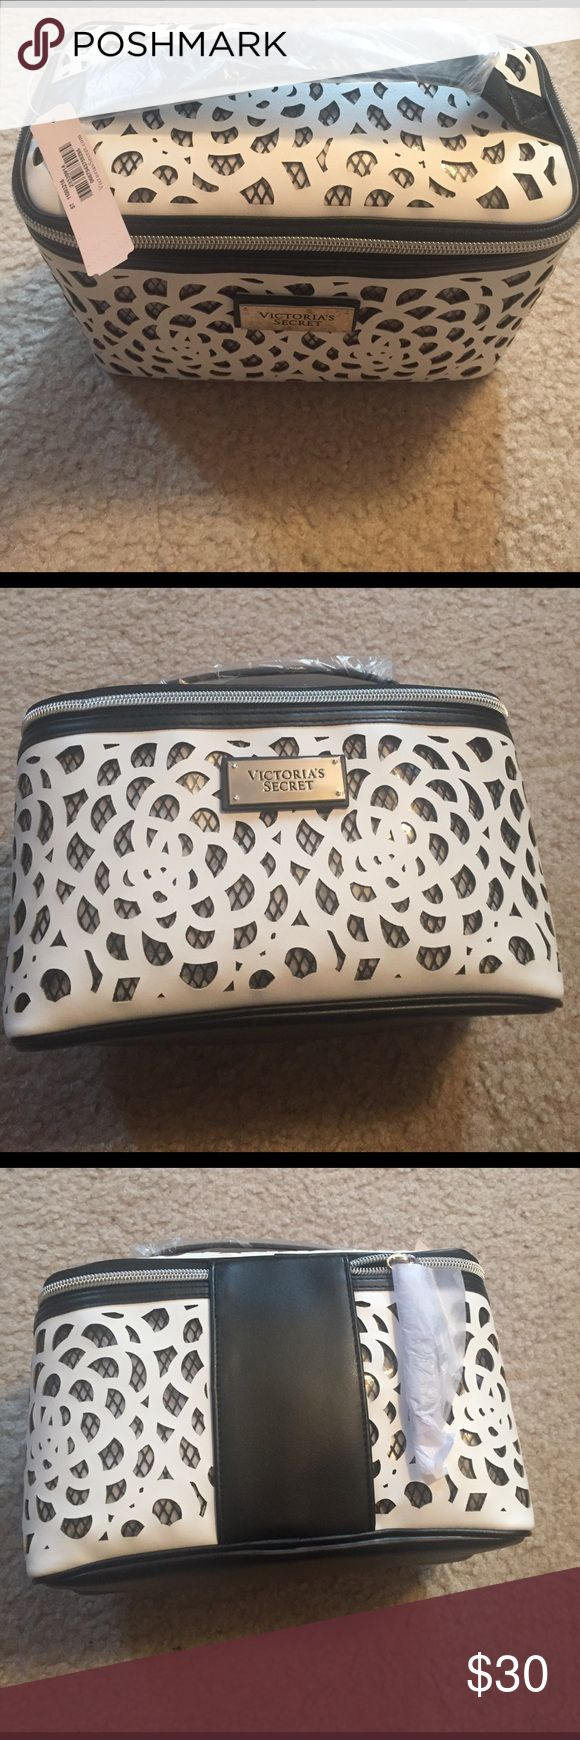 NWT Victoria's Sectret makeup bag Medium size, no trades please! Victoria's Secret Makeup